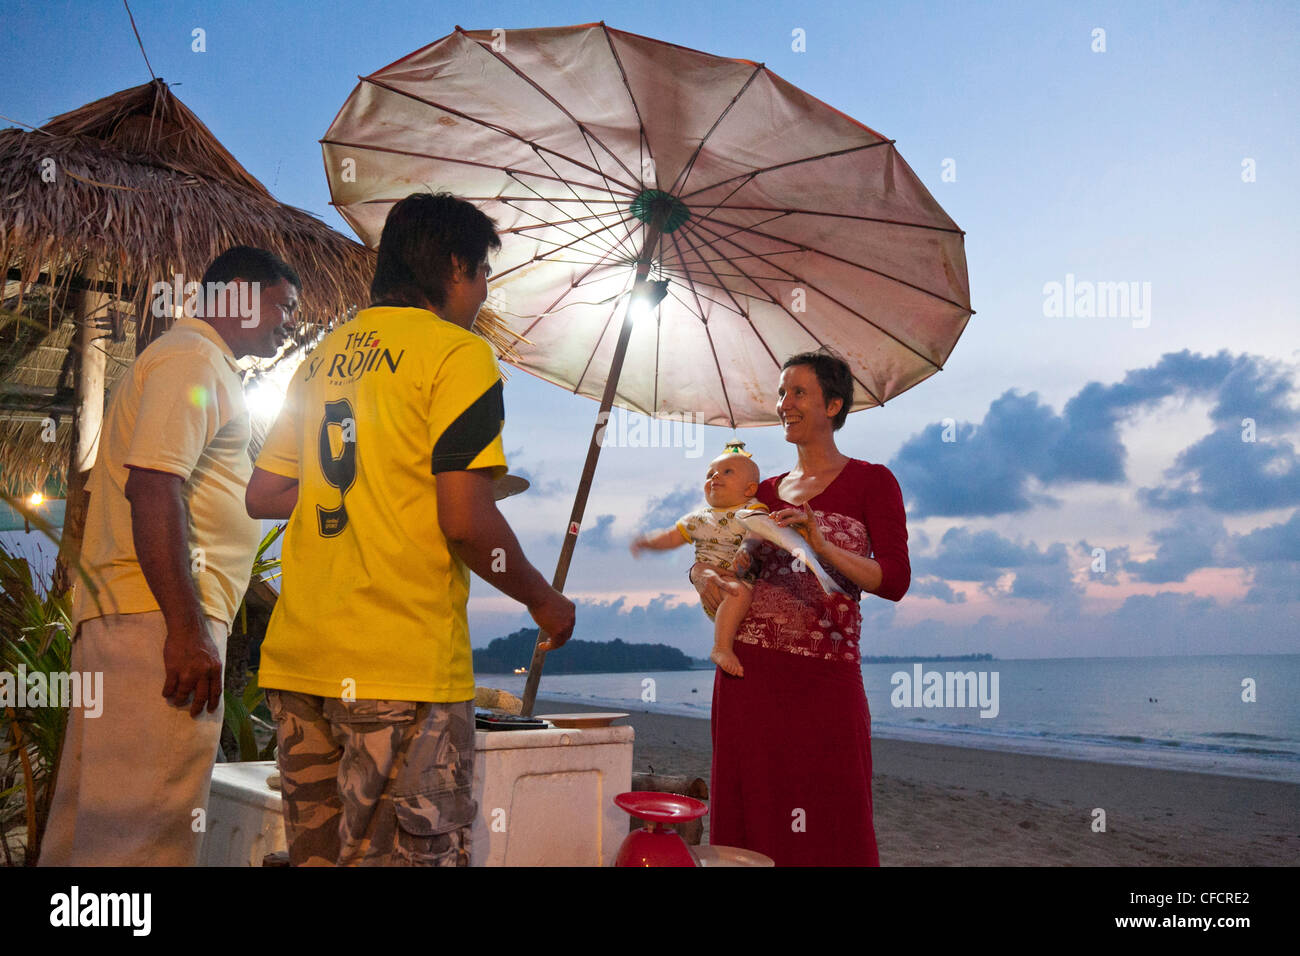 German woman with a baby on her arm buying fish from two Thai guys, beach at dusk, Pad Veek Beach, Andaman Sea, - Stock Image